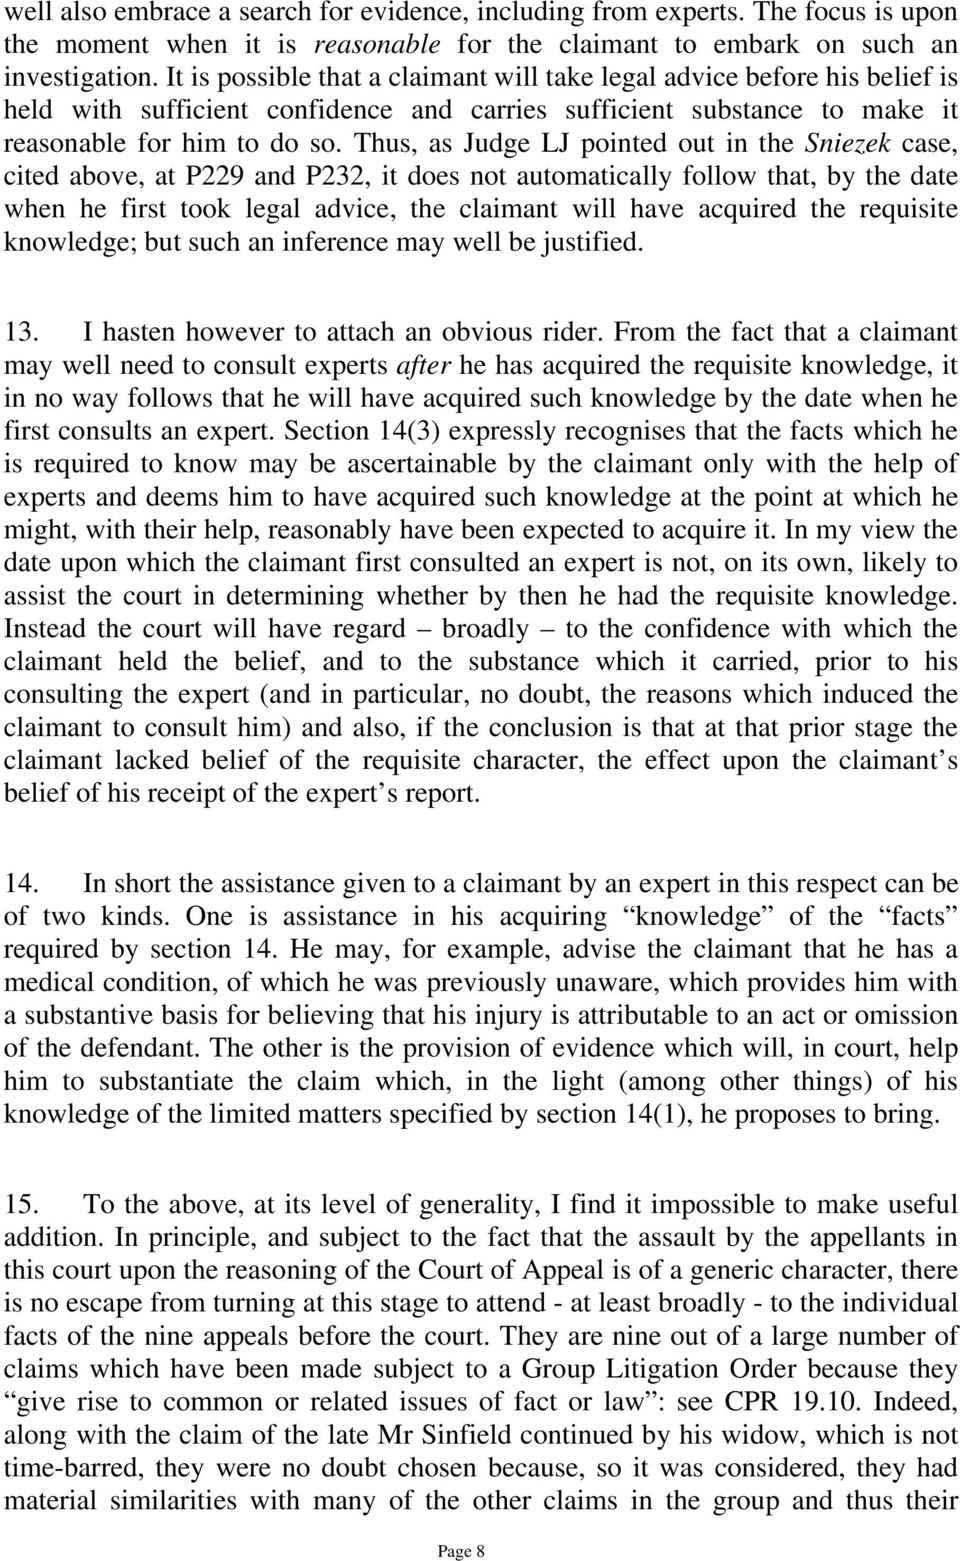 Thus, as Judge LJ pointed out in the Sniezek case, cited above, at P229 and P232, it does not automatically follow that, by the date when he first took legal advice, the claimant will have acquired